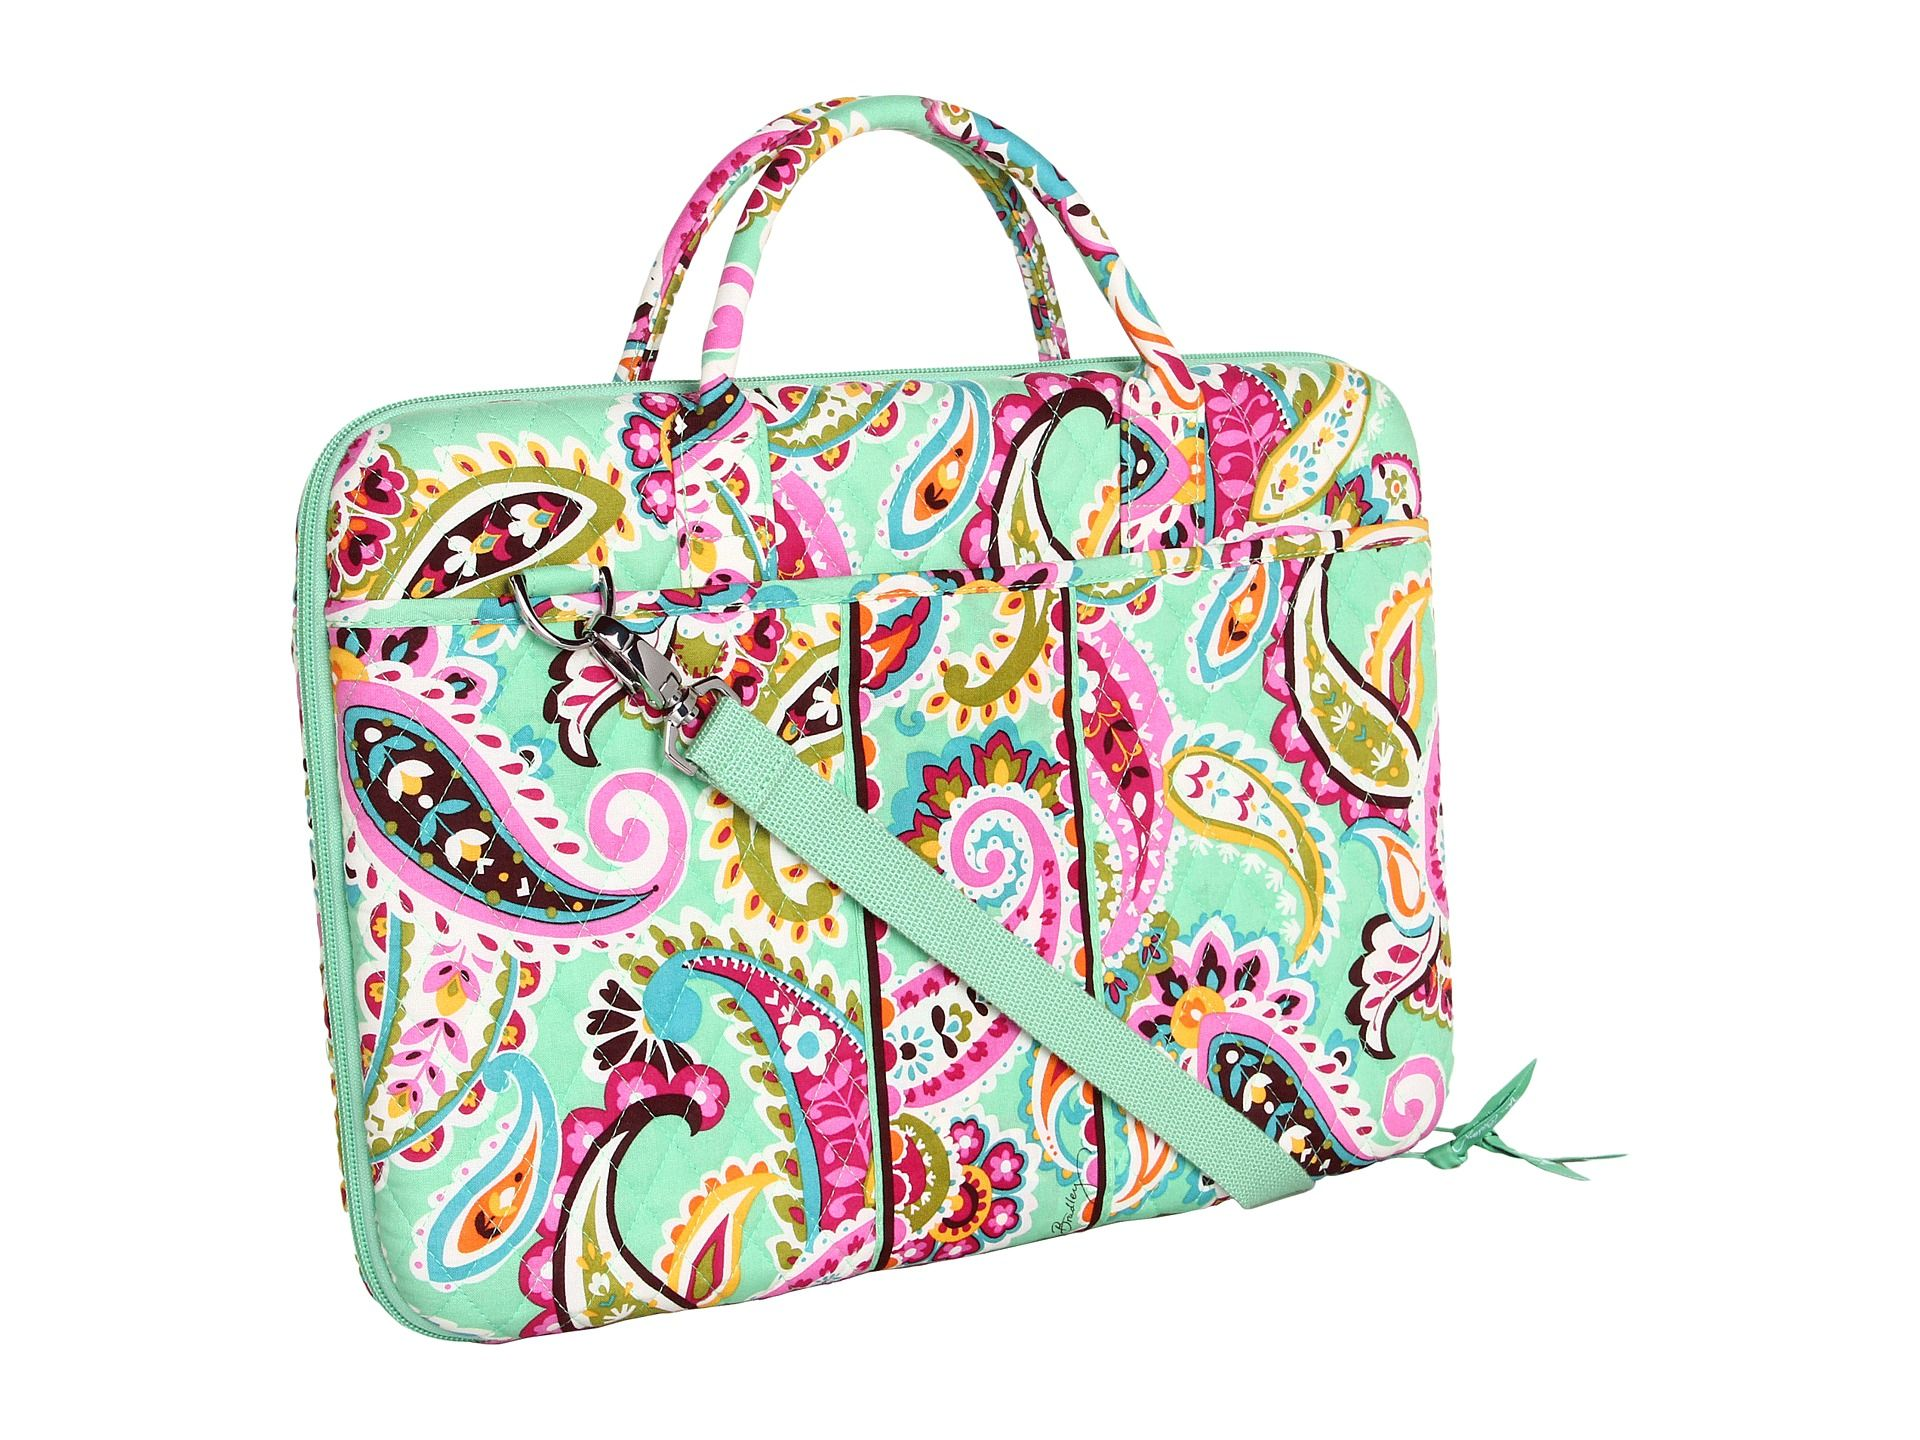 ce9e6317793 vera bradley tutti frutti laptop case - Got it for my laptop and I love the  pattern! The case itself is so nice